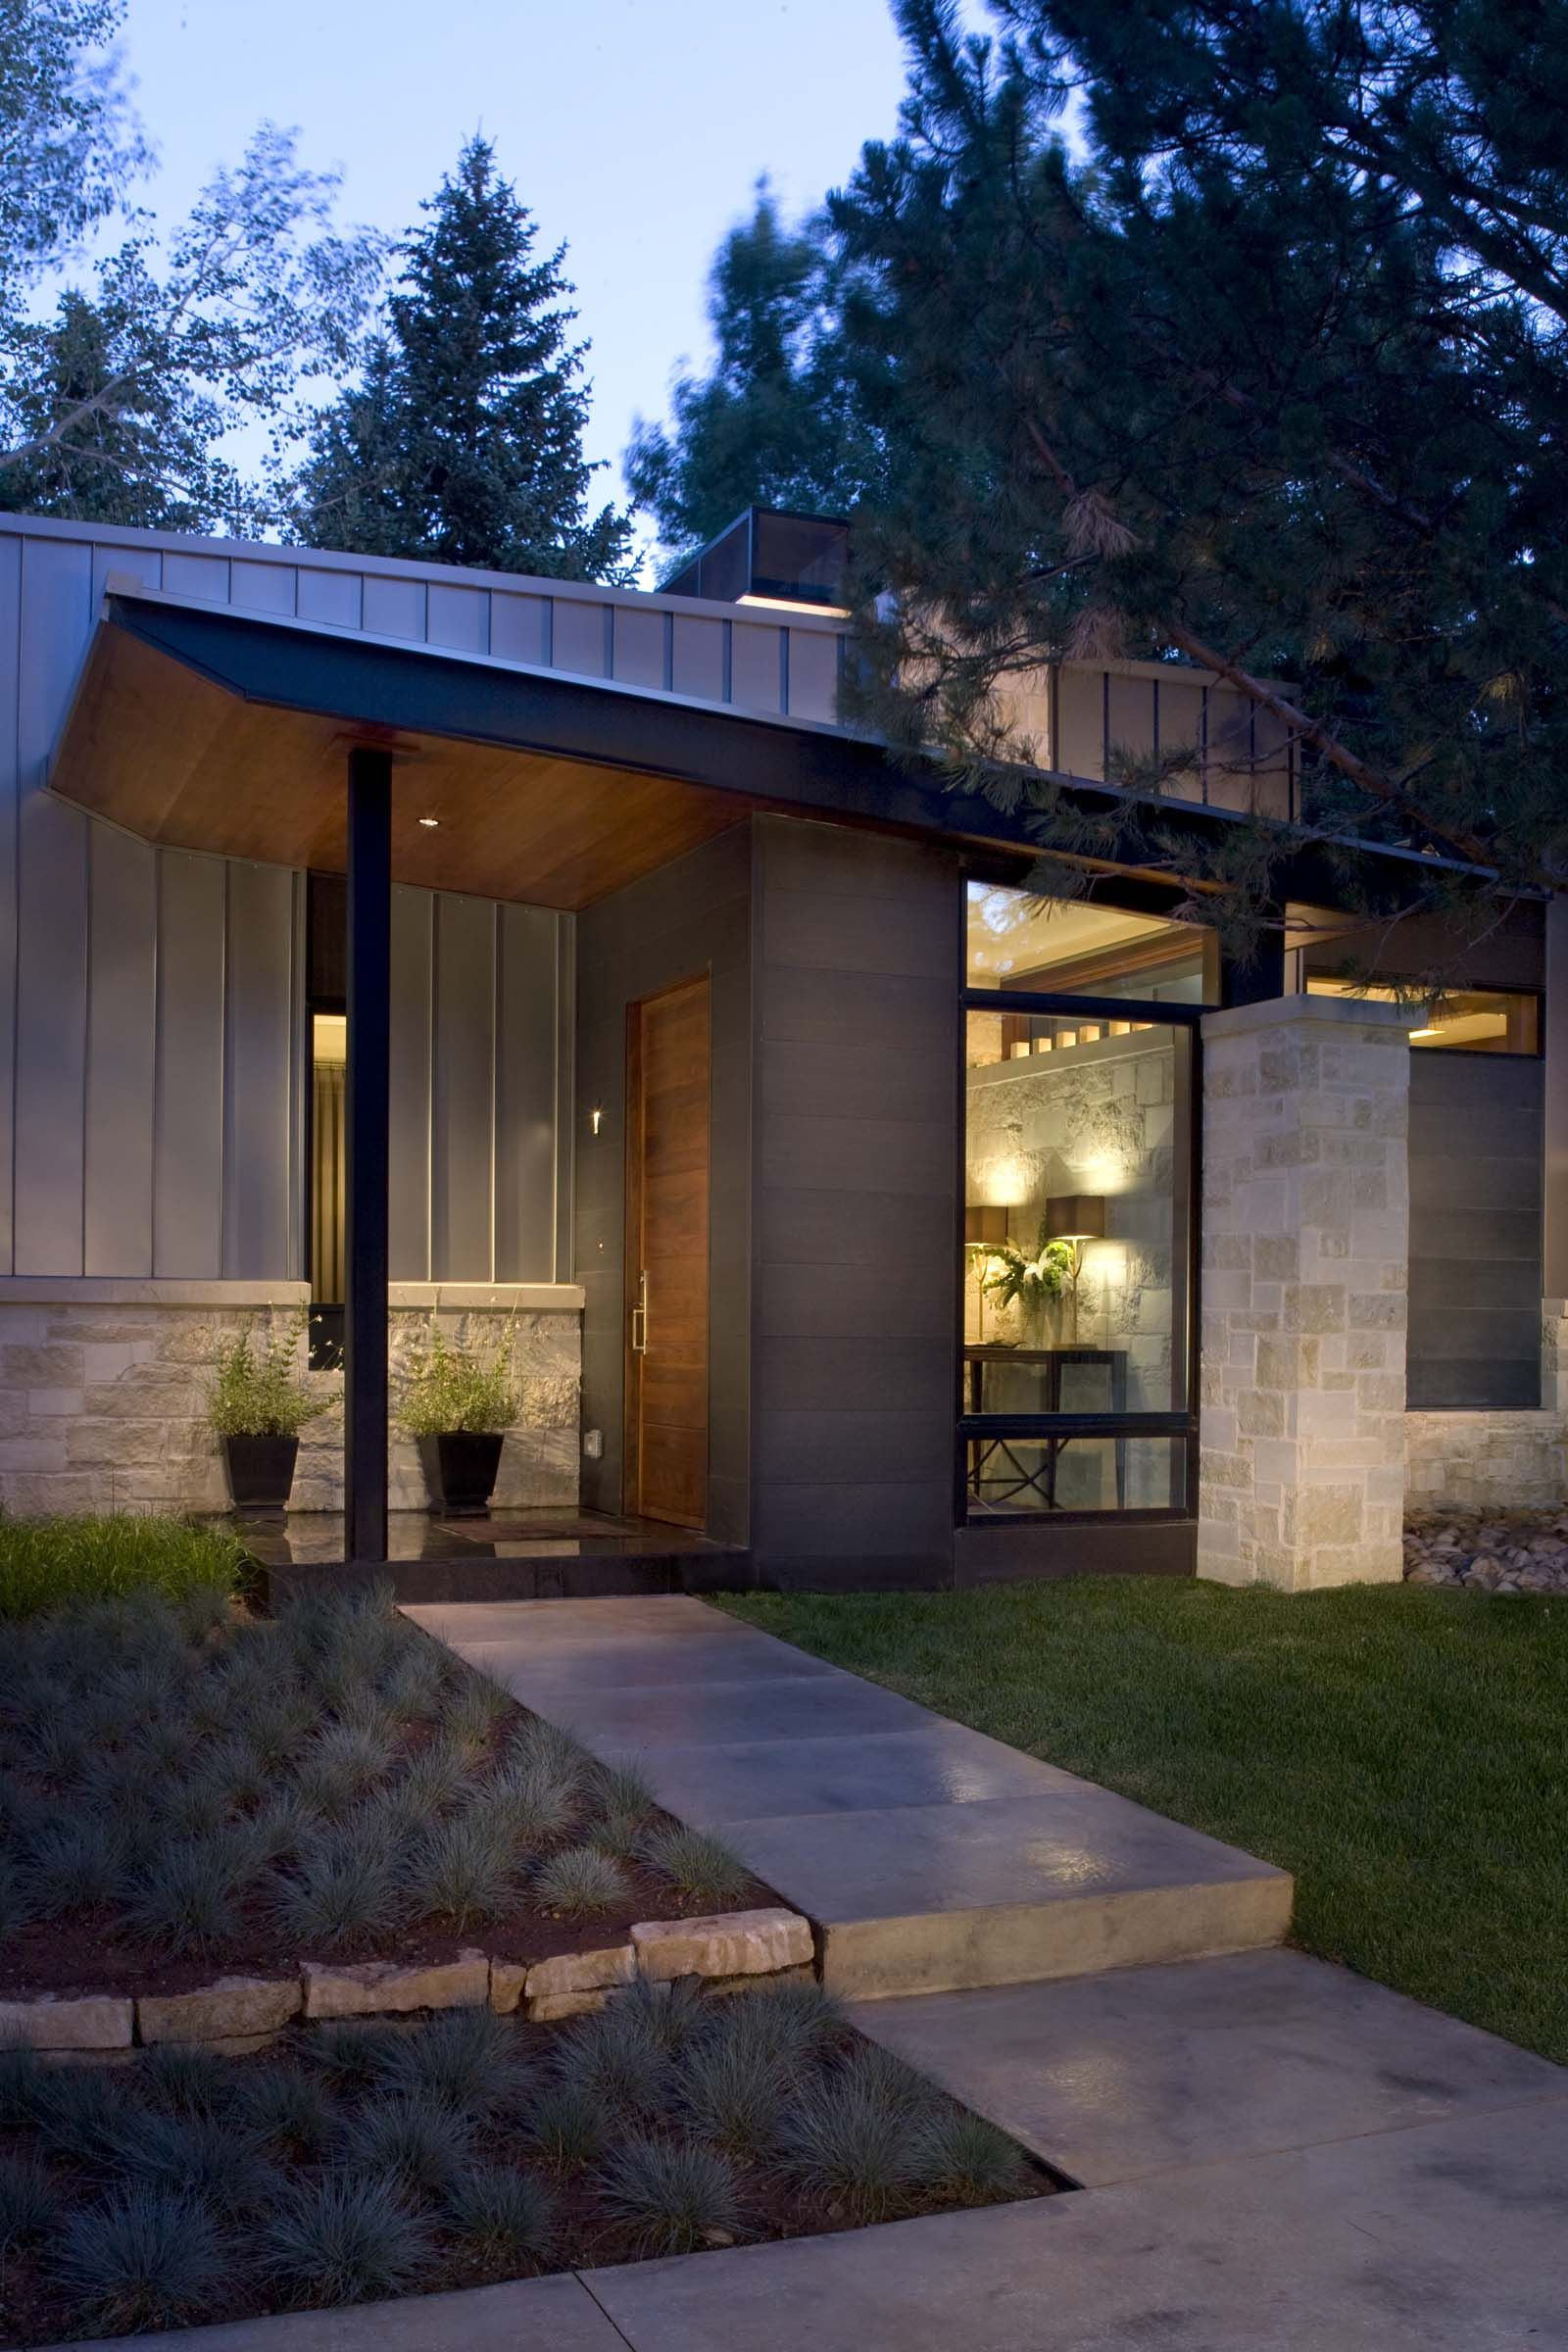 1000+ images about Modern ranch home on Pinterest - ^